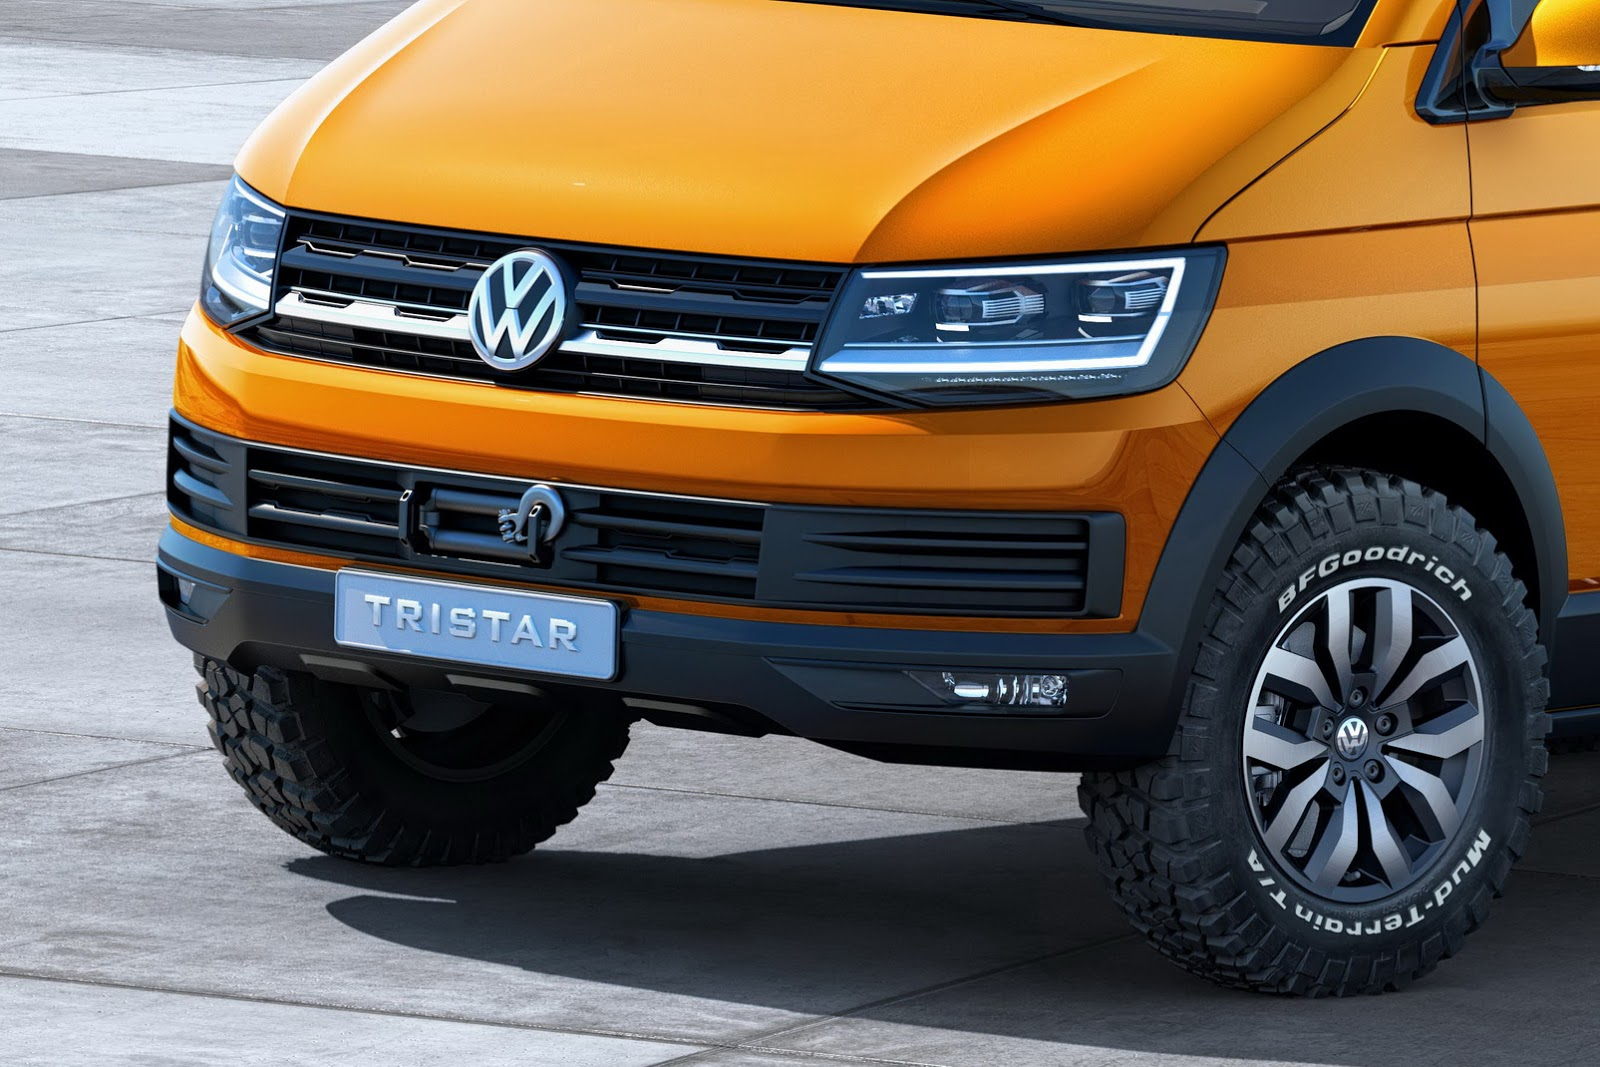 vw previews next gen t6 transporter with tristar concept. Black Bedroom Furniture Sets. Home Design Ideas